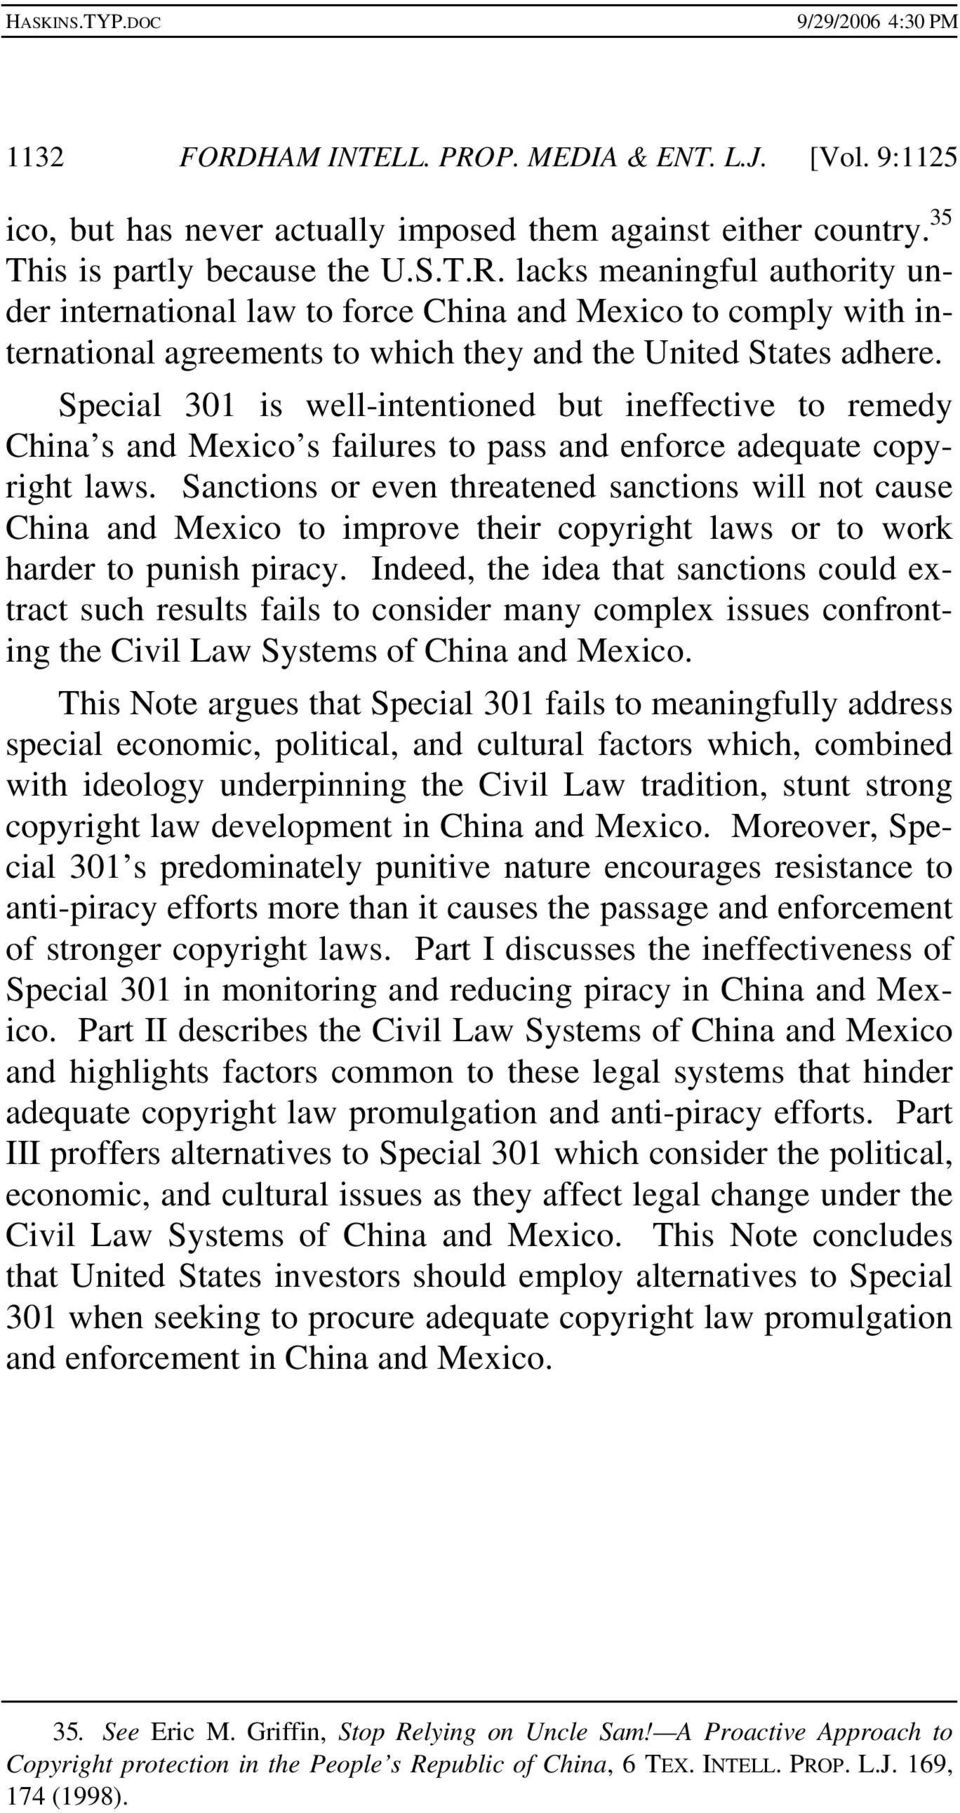 Sanctions or even threatened sanctions will not cause China and Mexico to improve their copyright laws or to work harder to punish piracy.